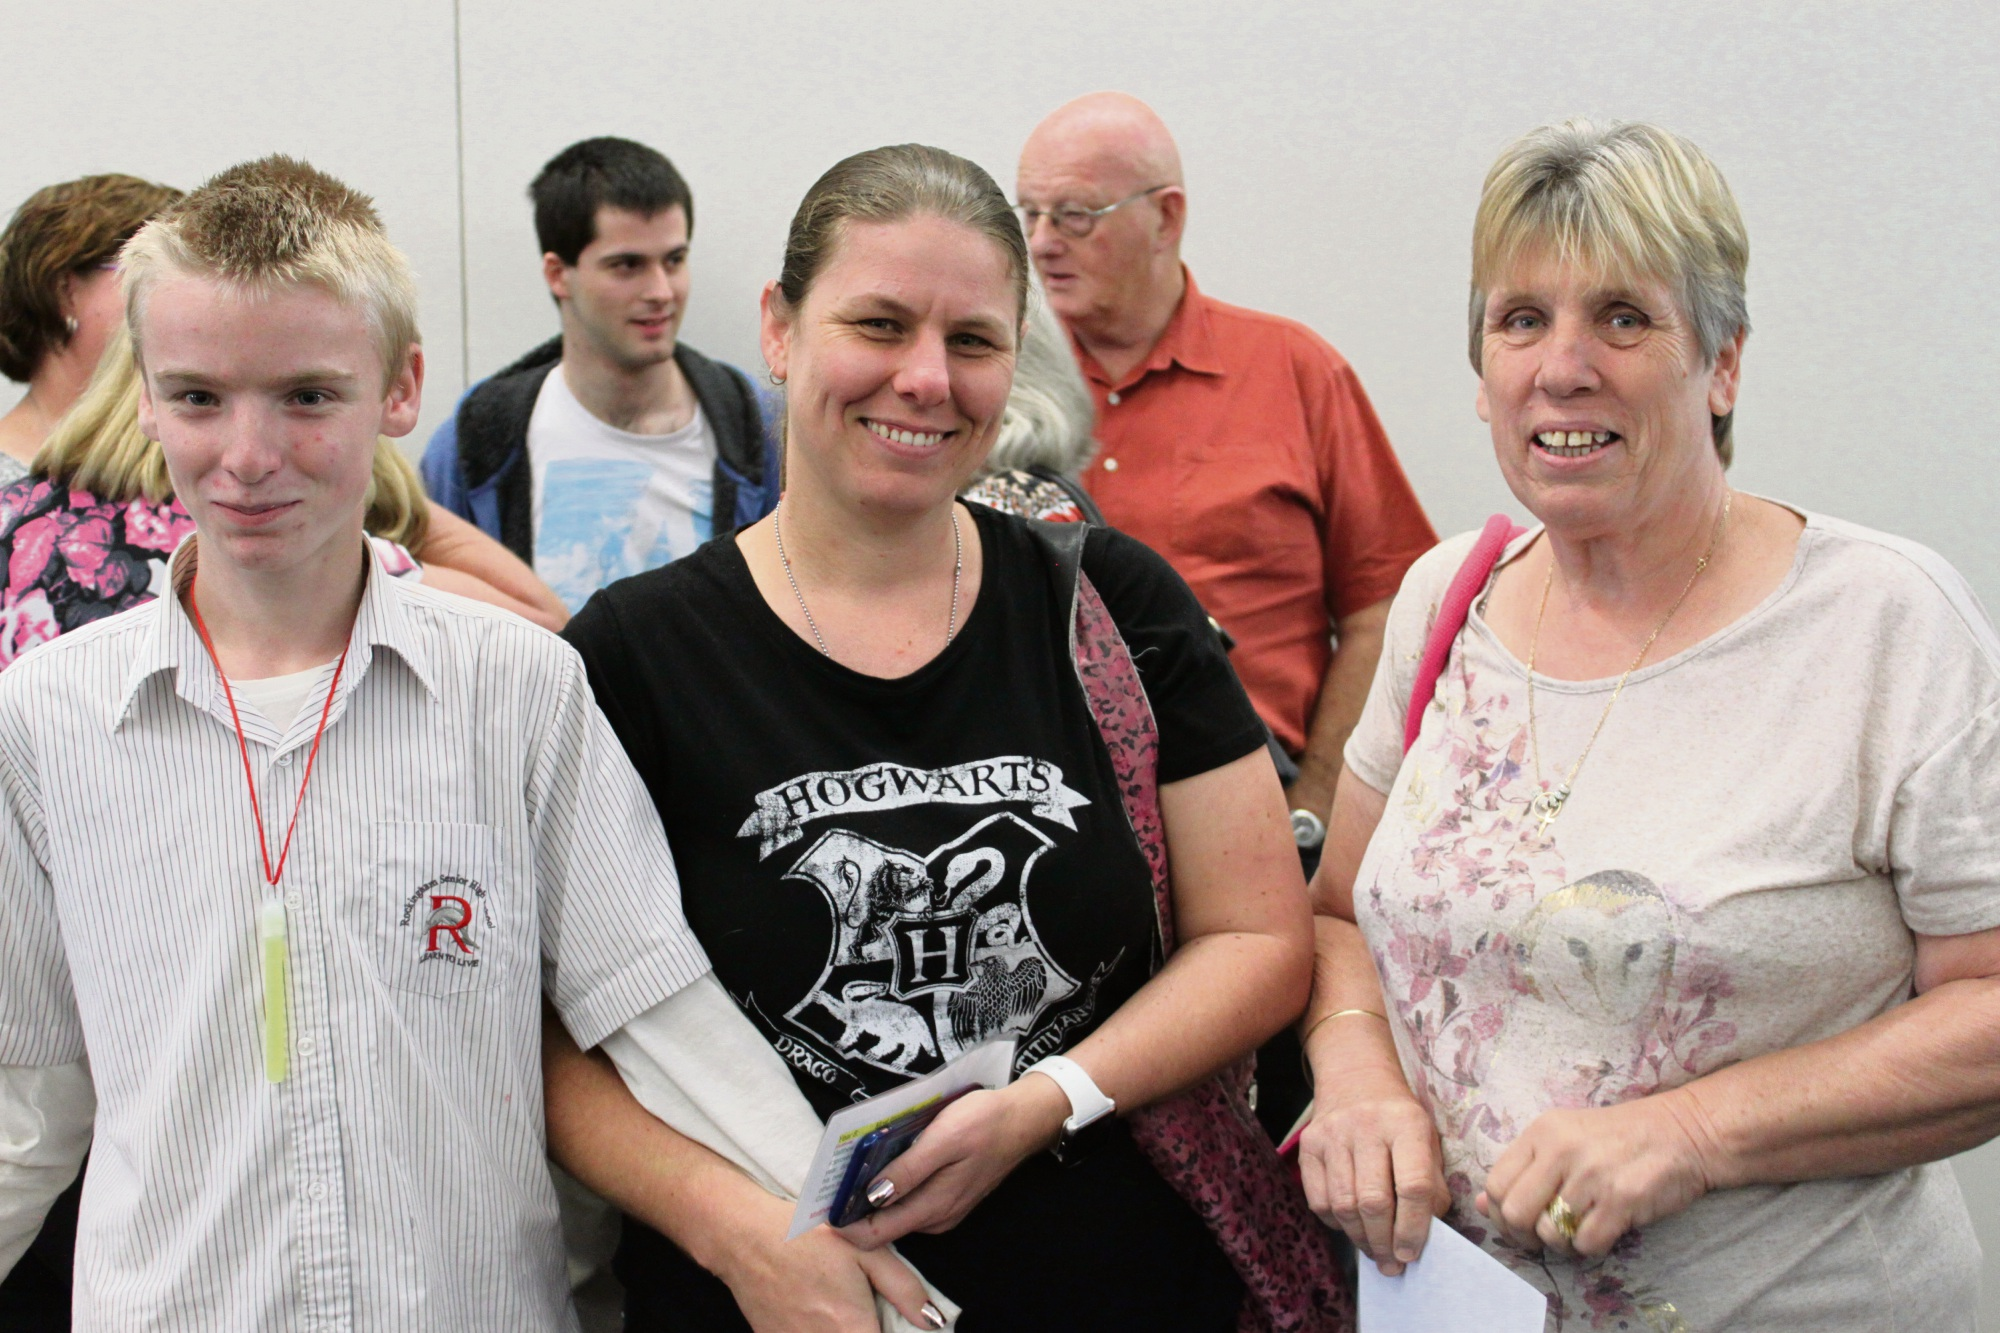 Year 8 student Matthew Clark (who won the Most Improved Award) with his mum Kelly Clark and grandmother Pat Clark.